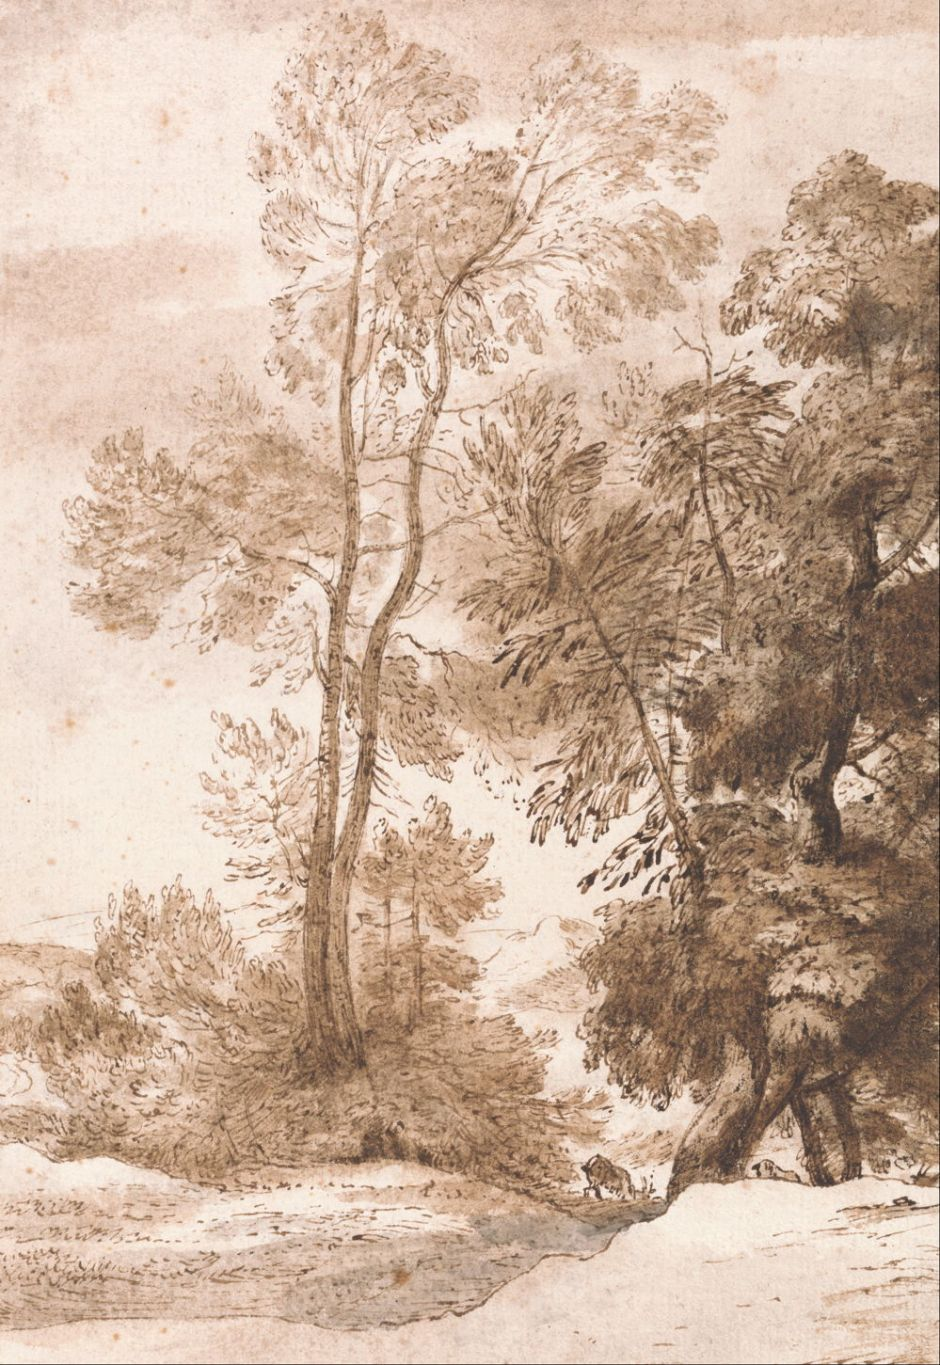 John Constable (1776–1837), Trees and Deer (1825), pen and brown ink with brown and gray wash on medium, rough, cream laid paper, 28.9 x 20 cm, Yale Center for British Art, New Haven, CT. Wikimedia Commons.